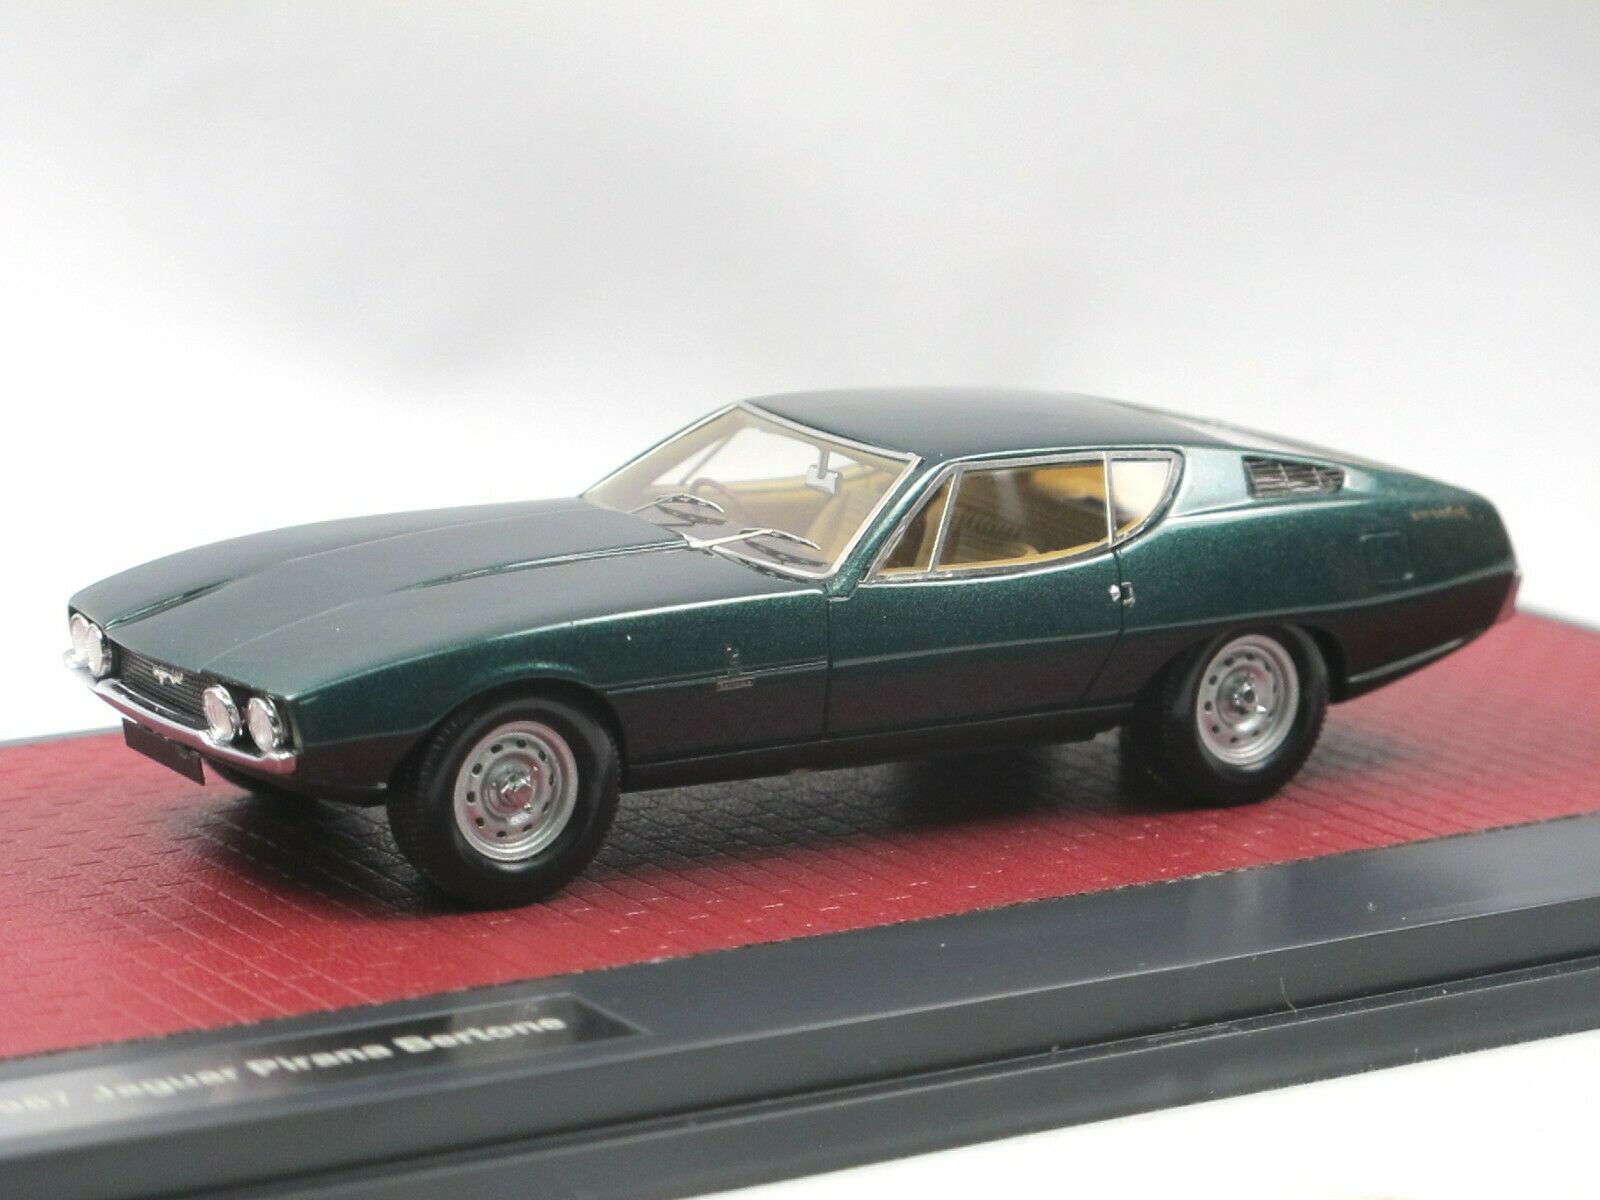 compra limitada Matrix scale scale scale models 1967 bertone Jaguar Pirana Coupe verde 1 43 Limited Edition  ahorra 50% -75% de descuento